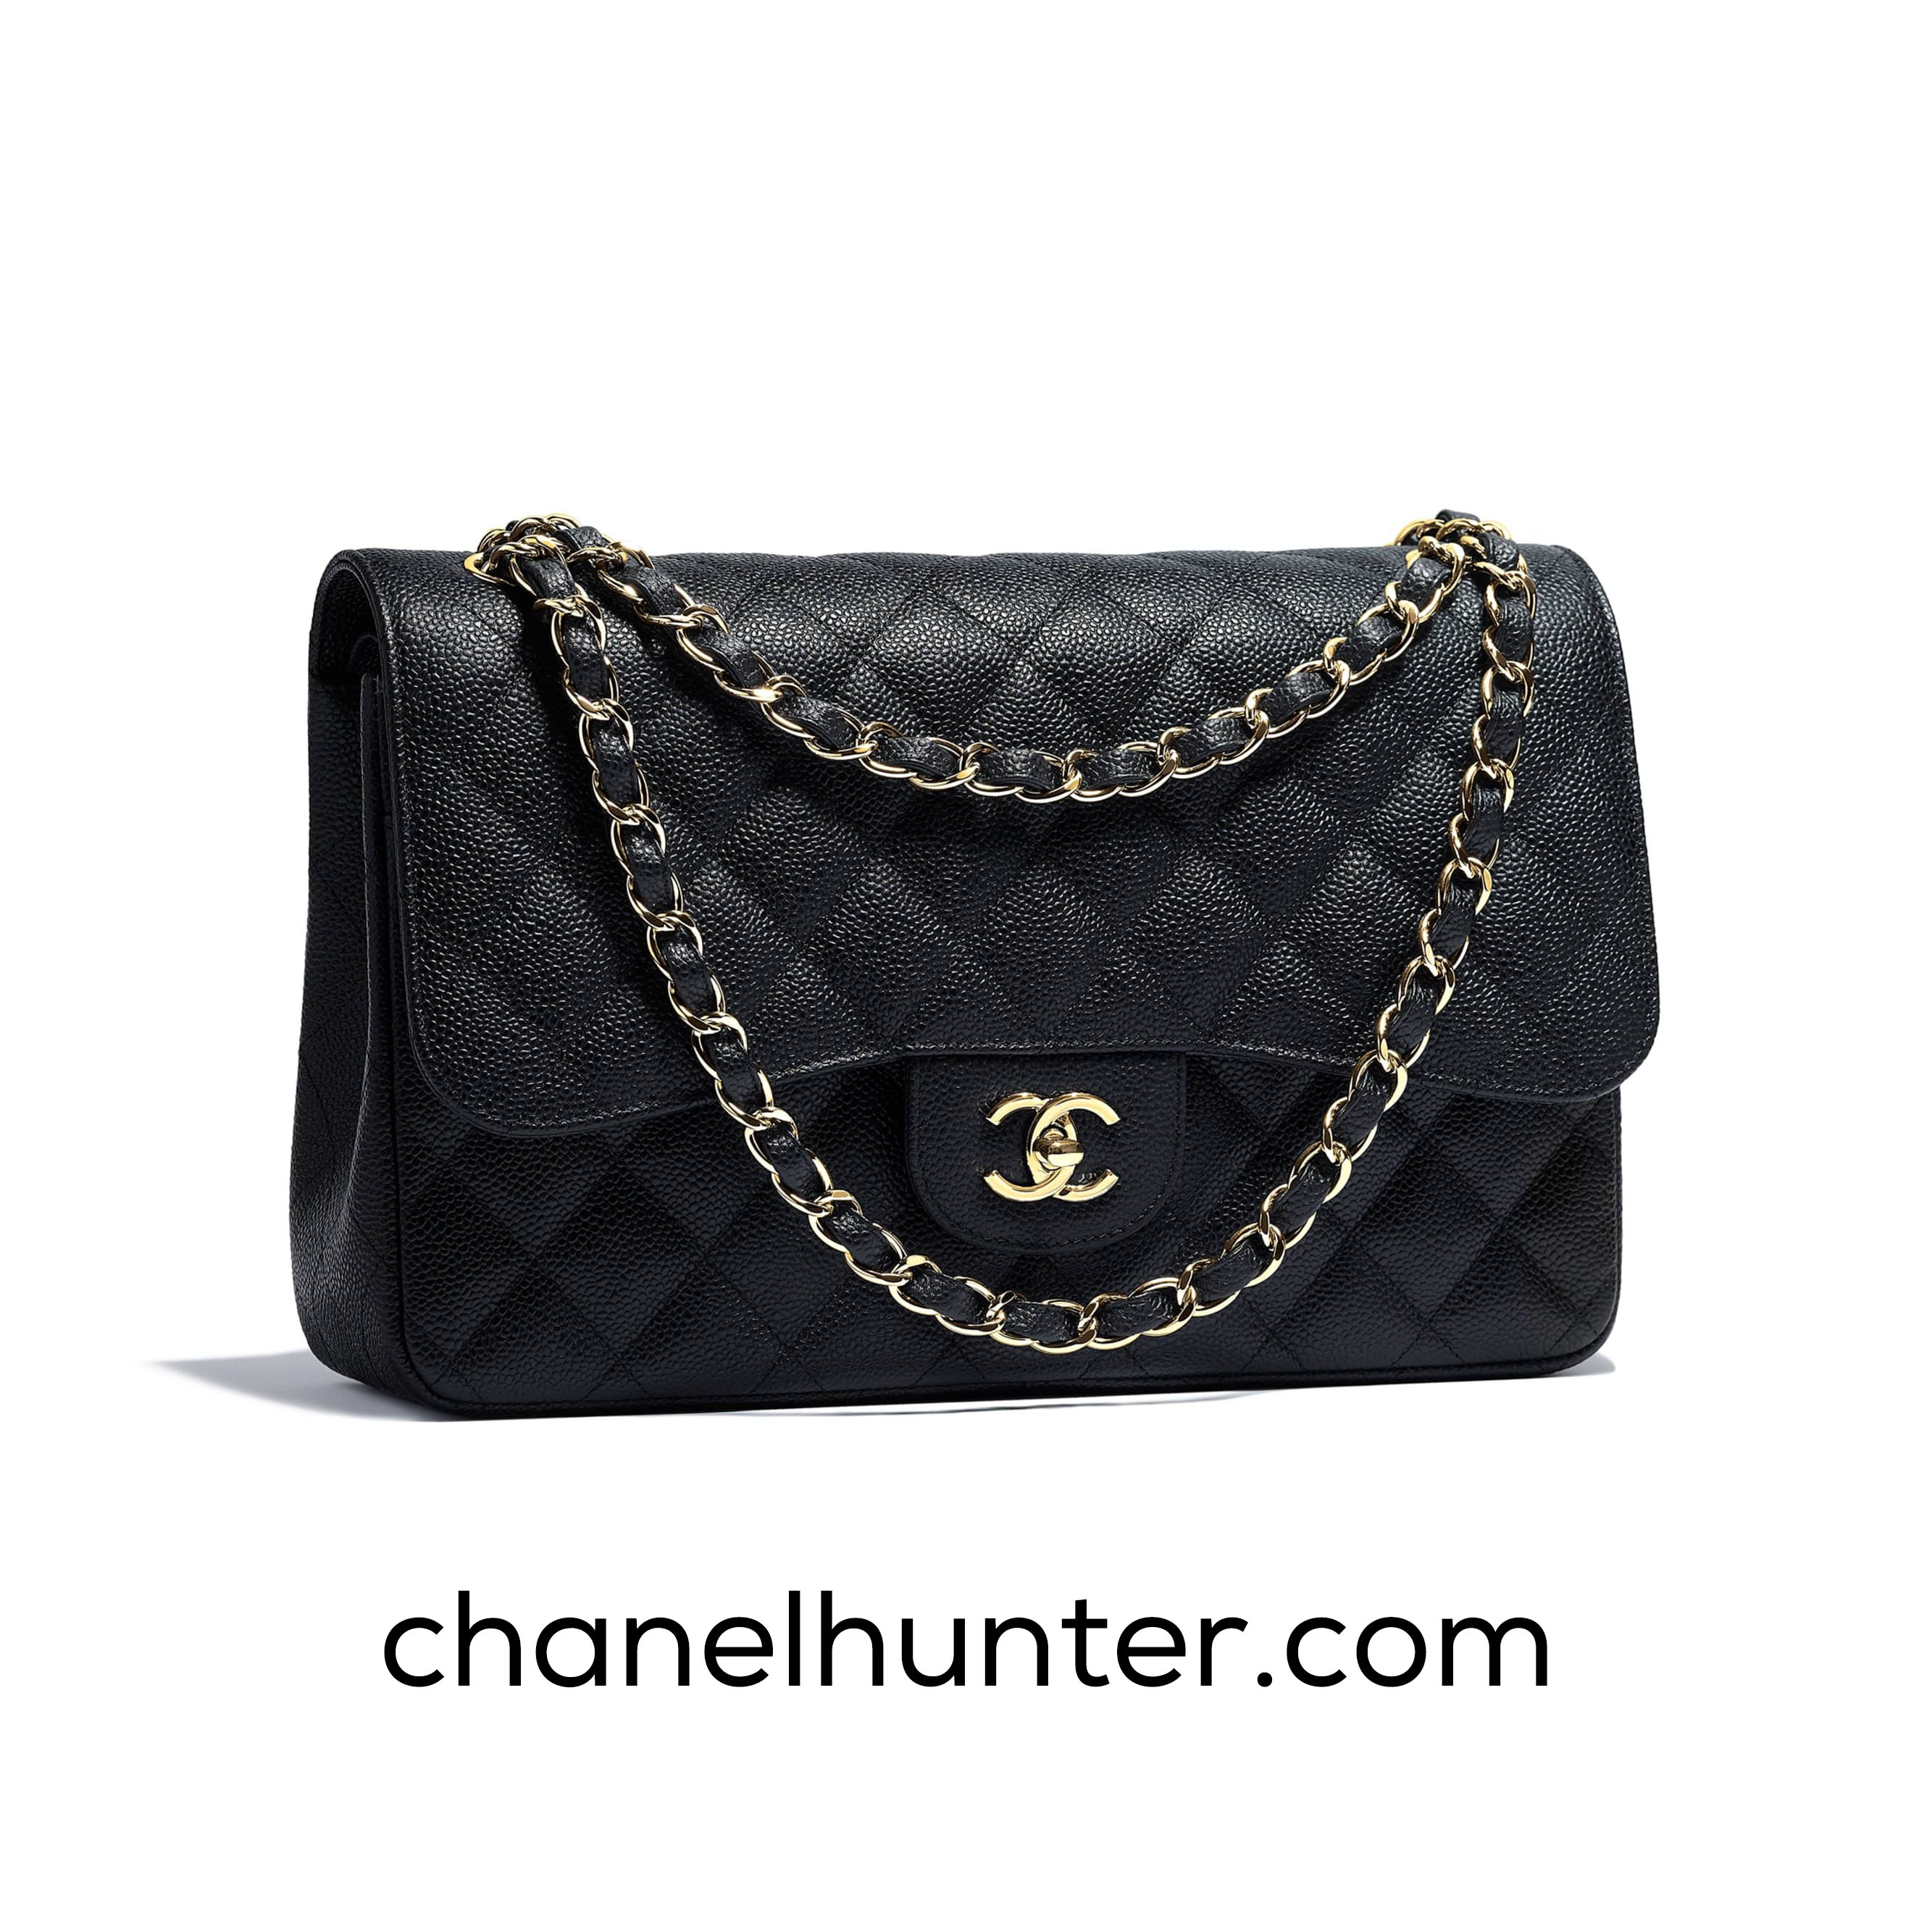 7f26b5f67b3908 Chanel Replica bags do look not only beautiful, fancy, and elegant, but  also similar to the original ones. It is quite a task to tell the  difference between ...